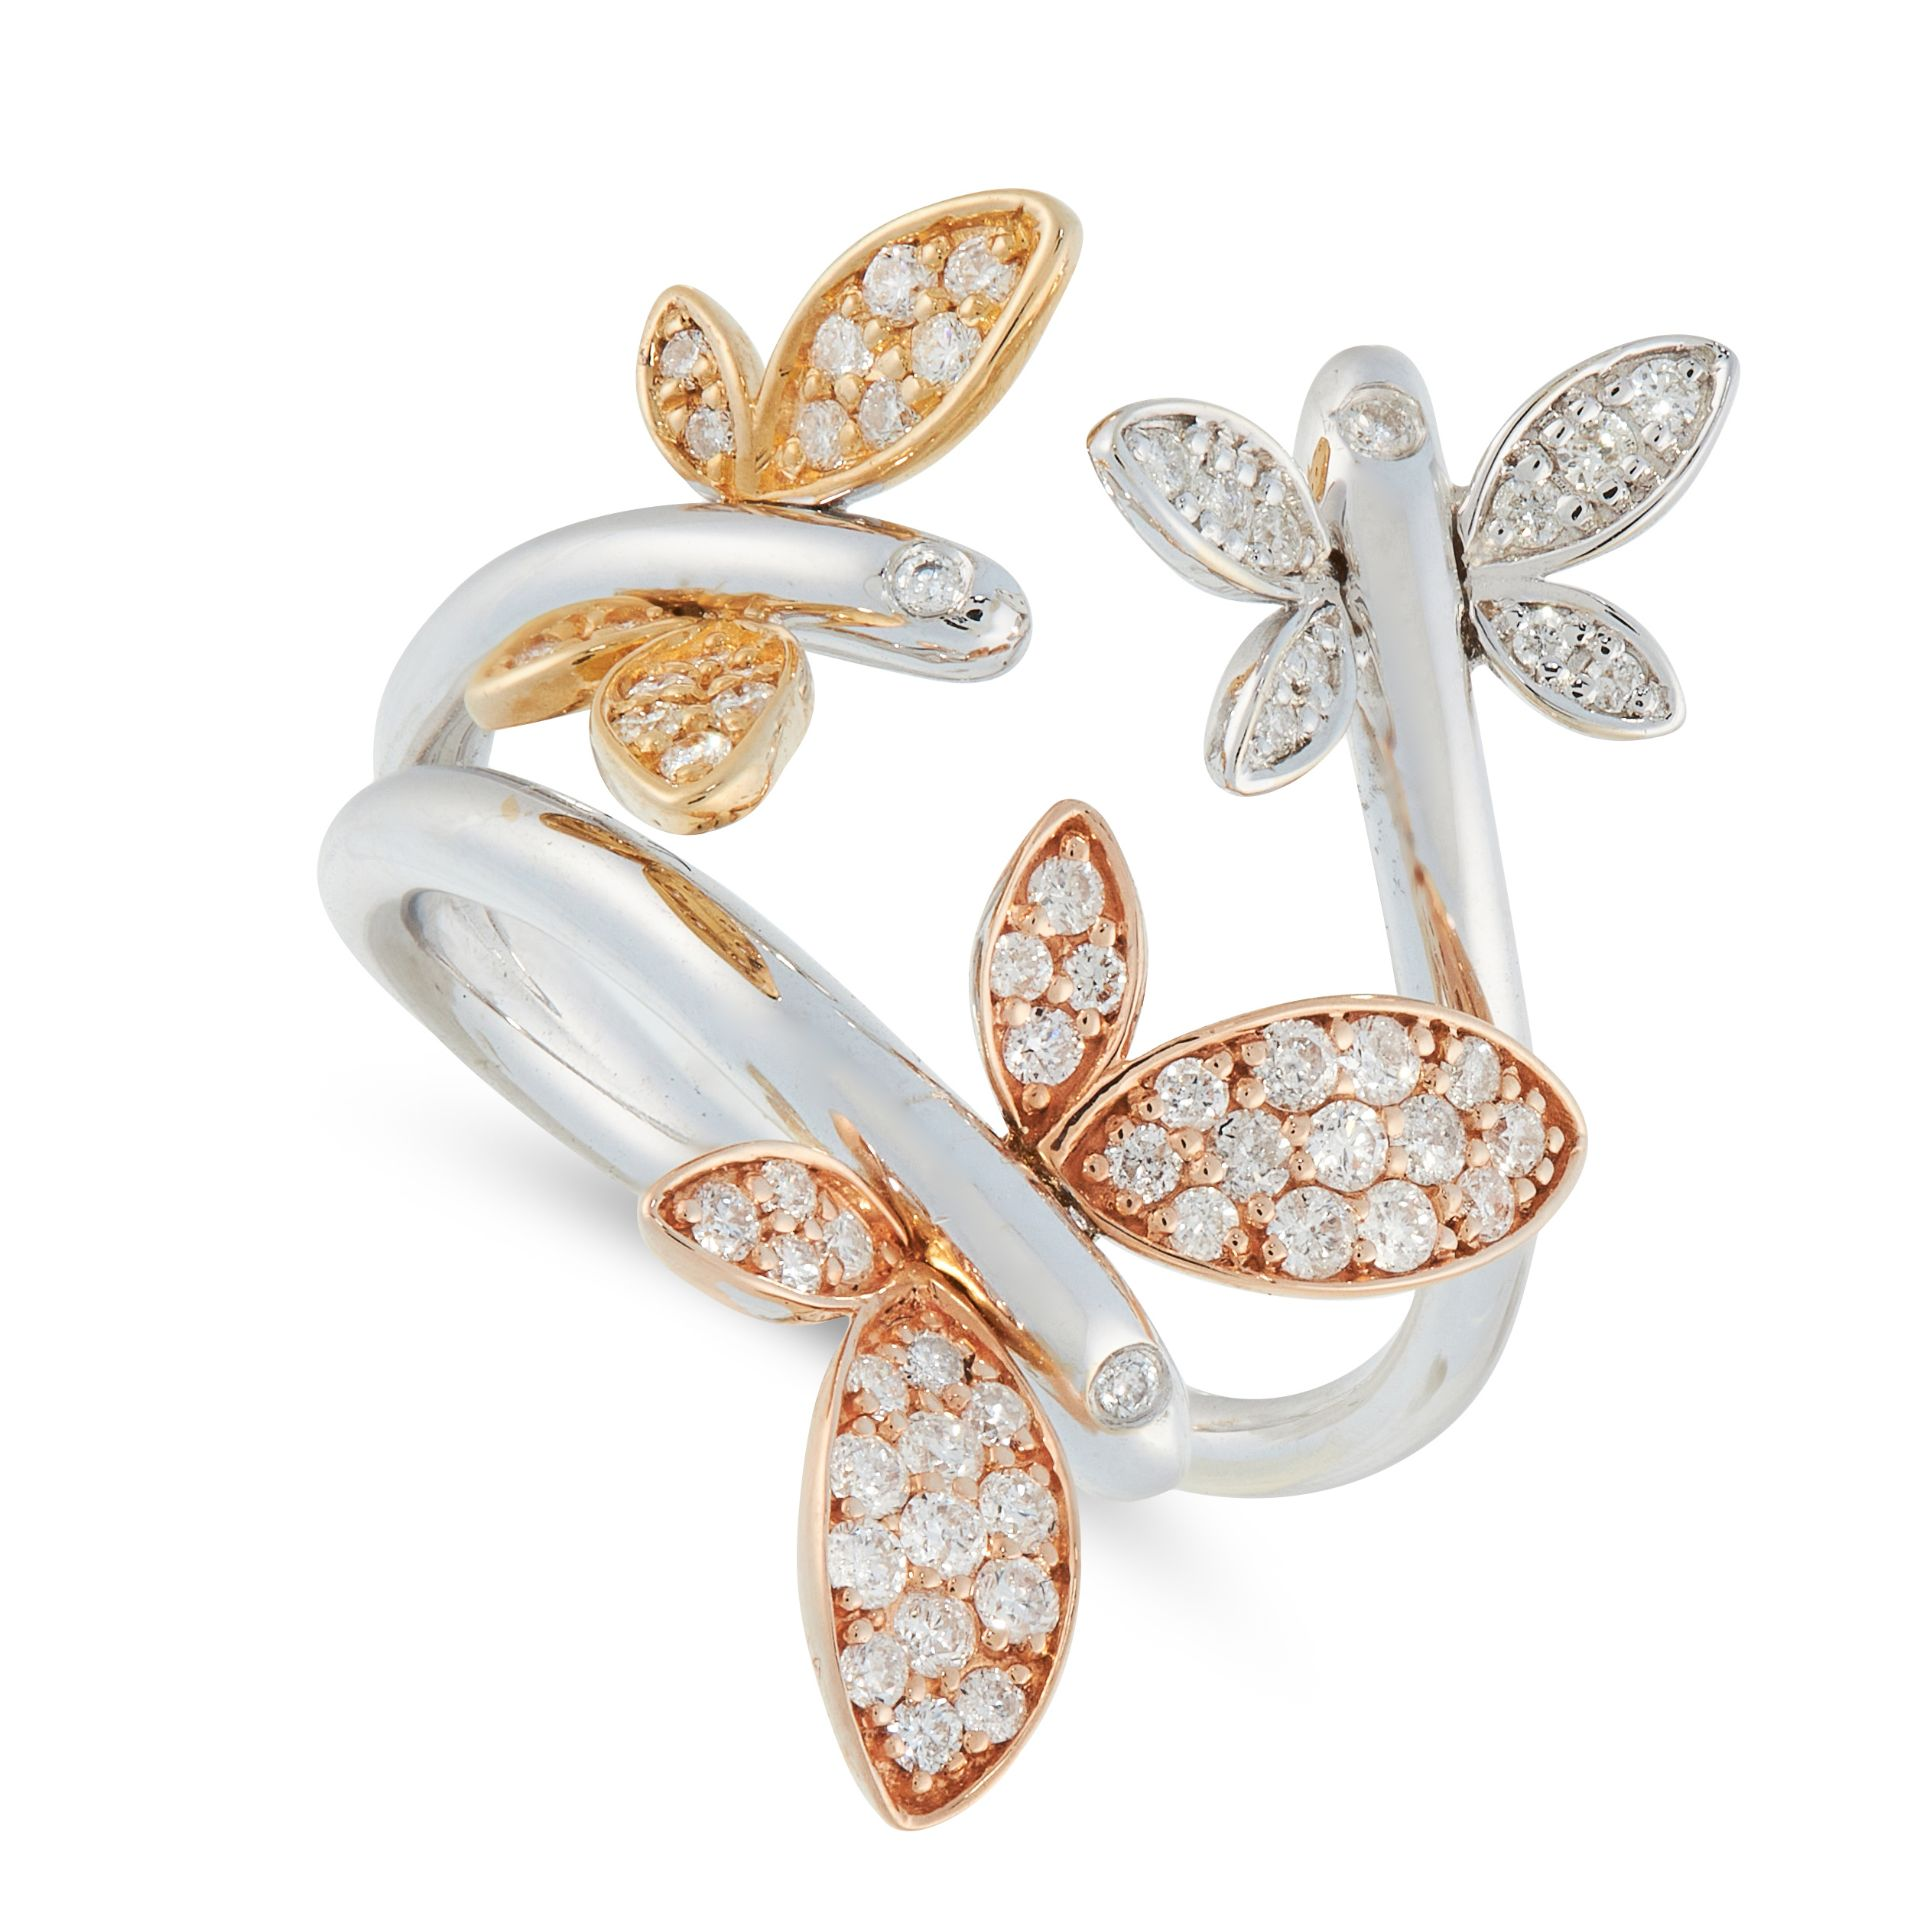 A DIAMOND BUTTERFLY RING in tri colour 18ct gold, in open band design, set with three butterfly